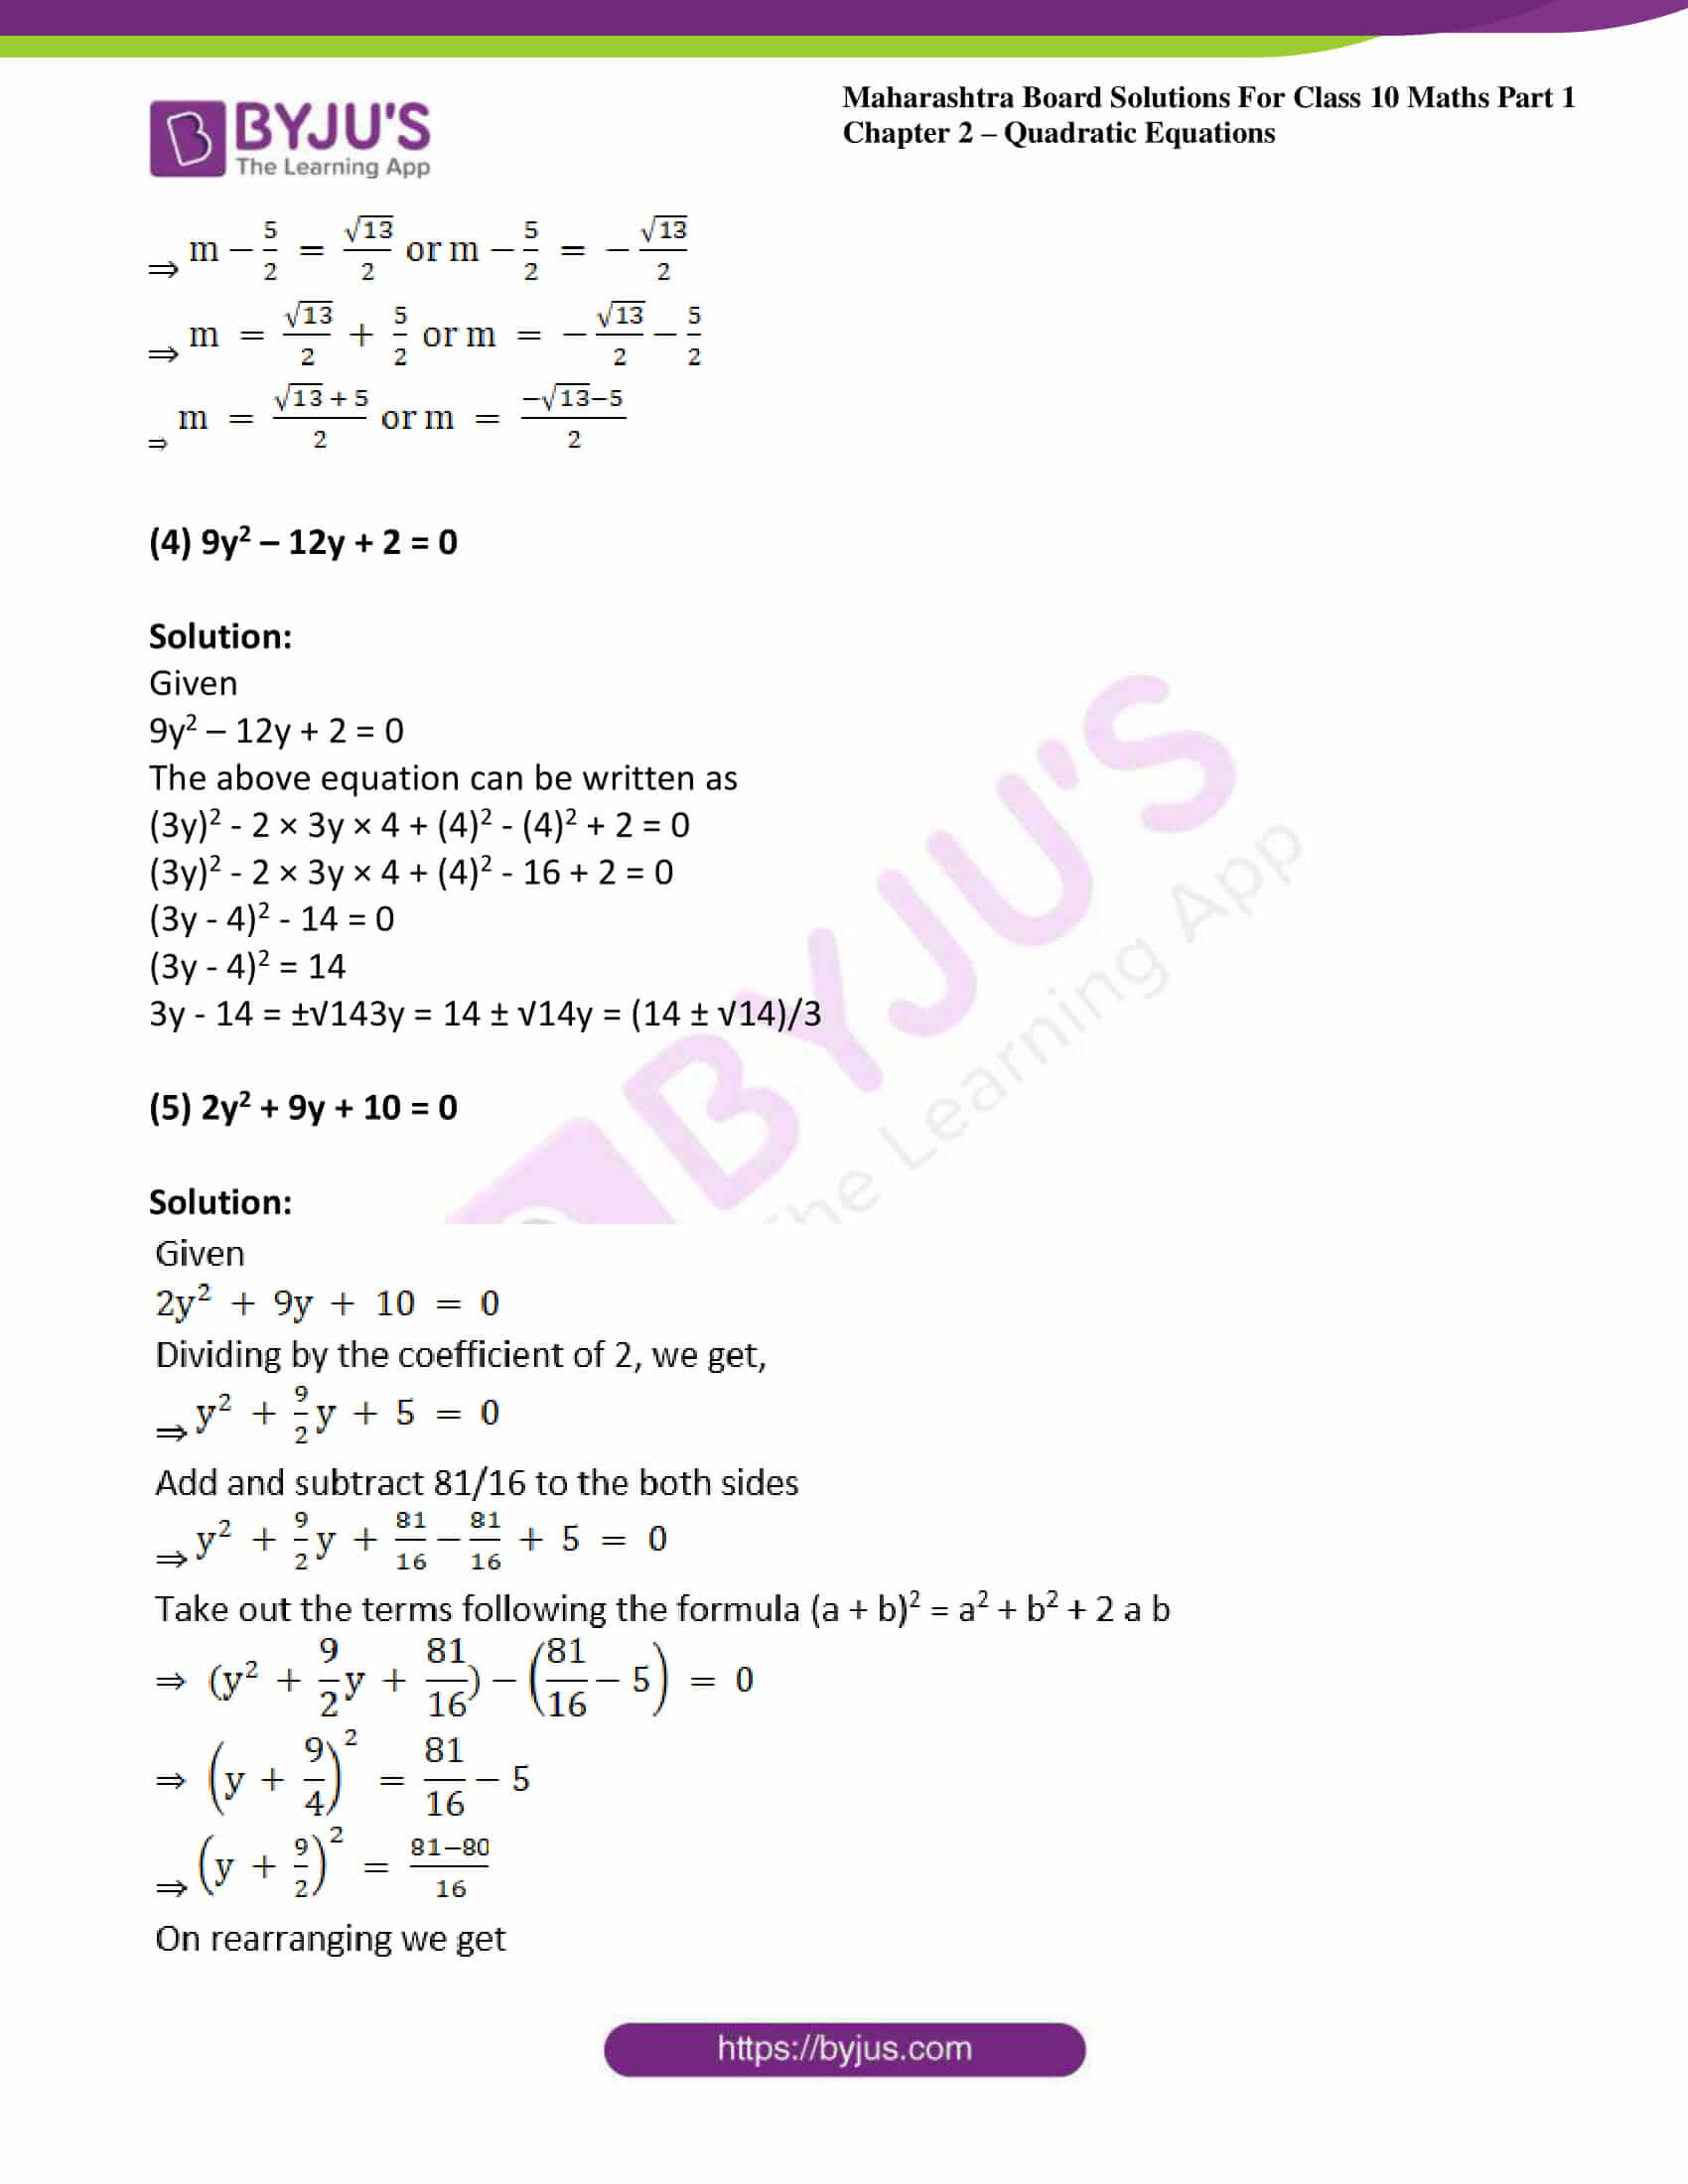 msbshse solutions class 10 maths part 1 chapter 2 13